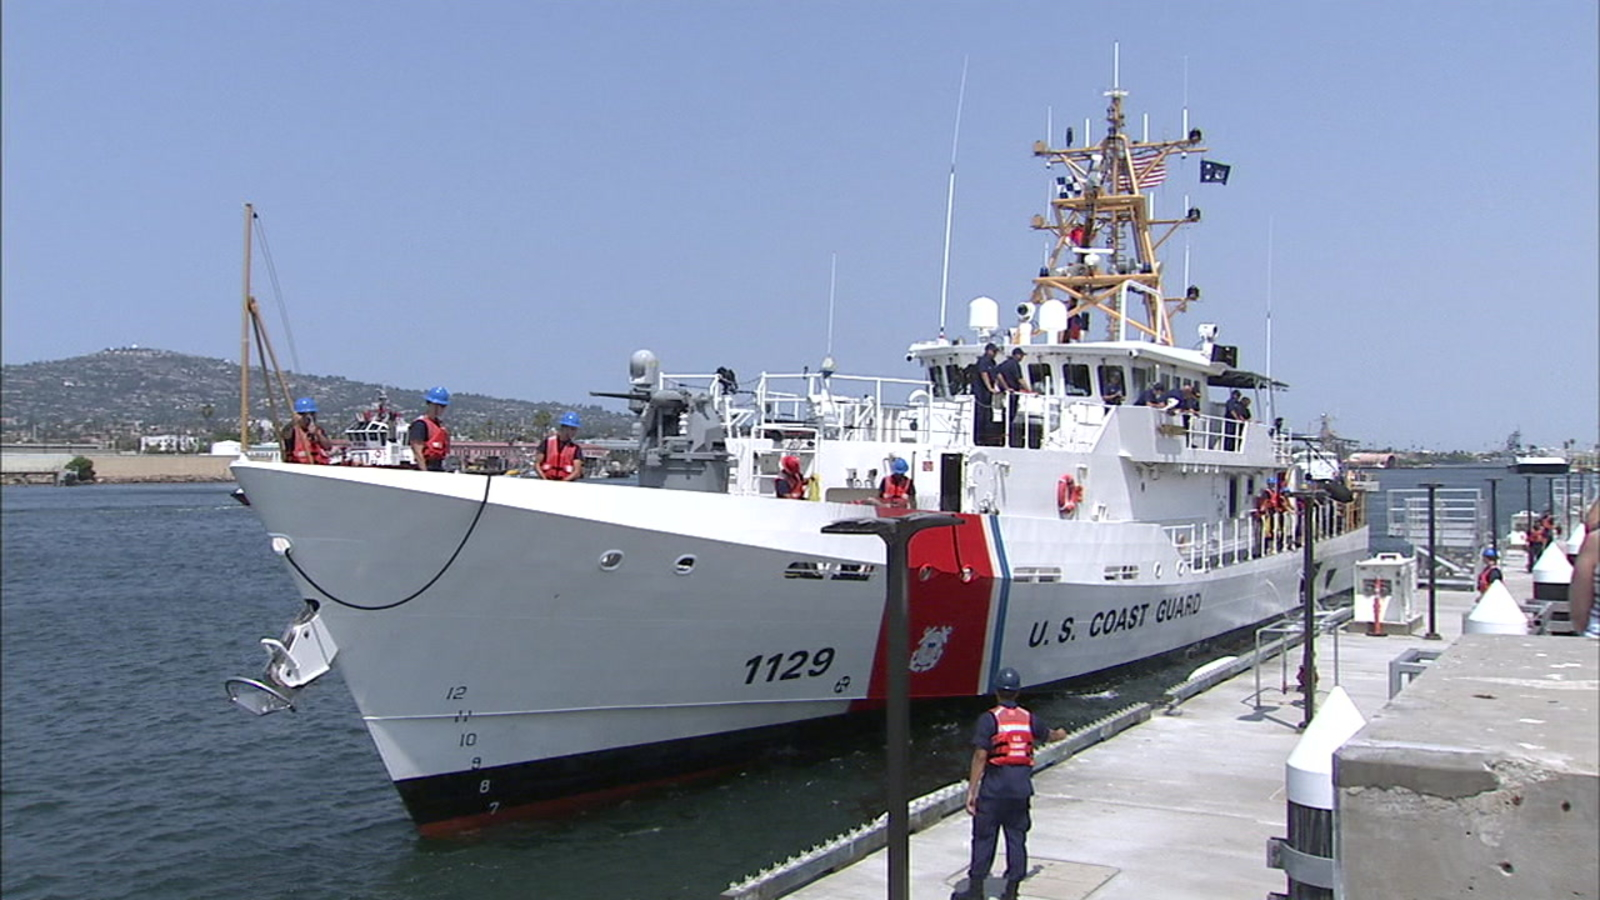 New Coast Guard Fast Response Ship Arrives For Duty In San Pedro